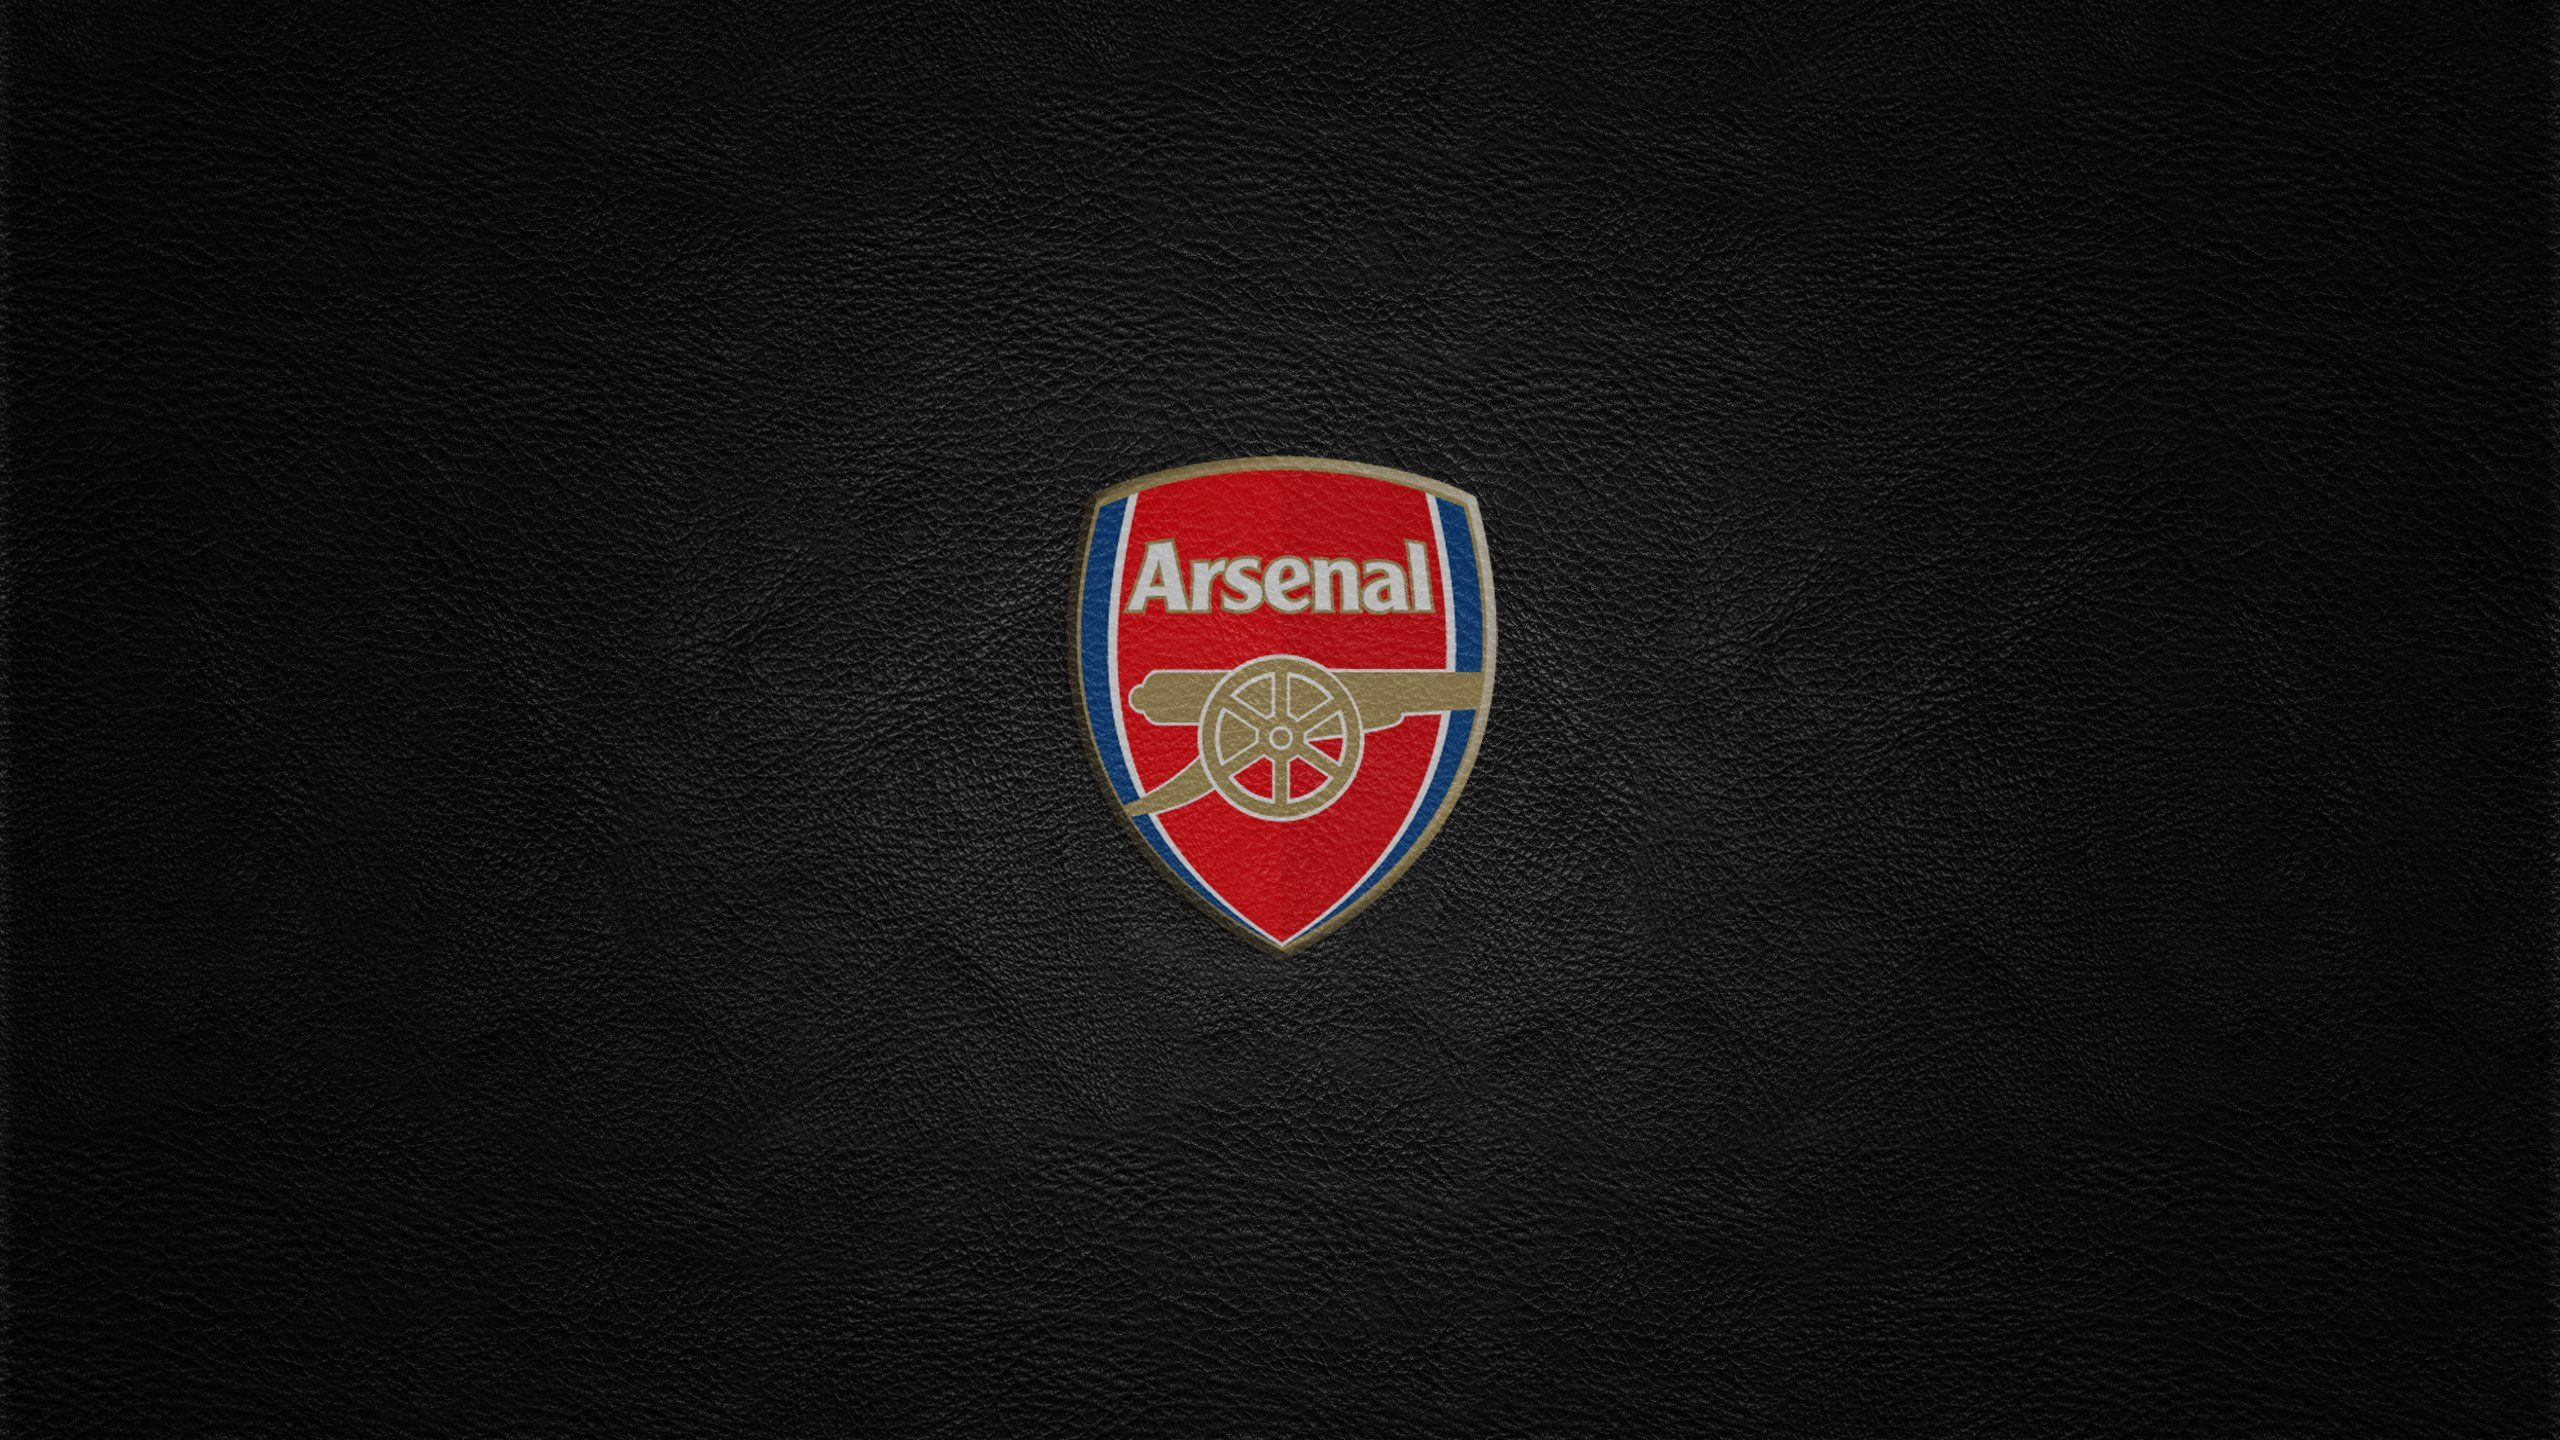 Arsenal Wallpaper Clubs Hd Backgrounds Wallpaper In 2019